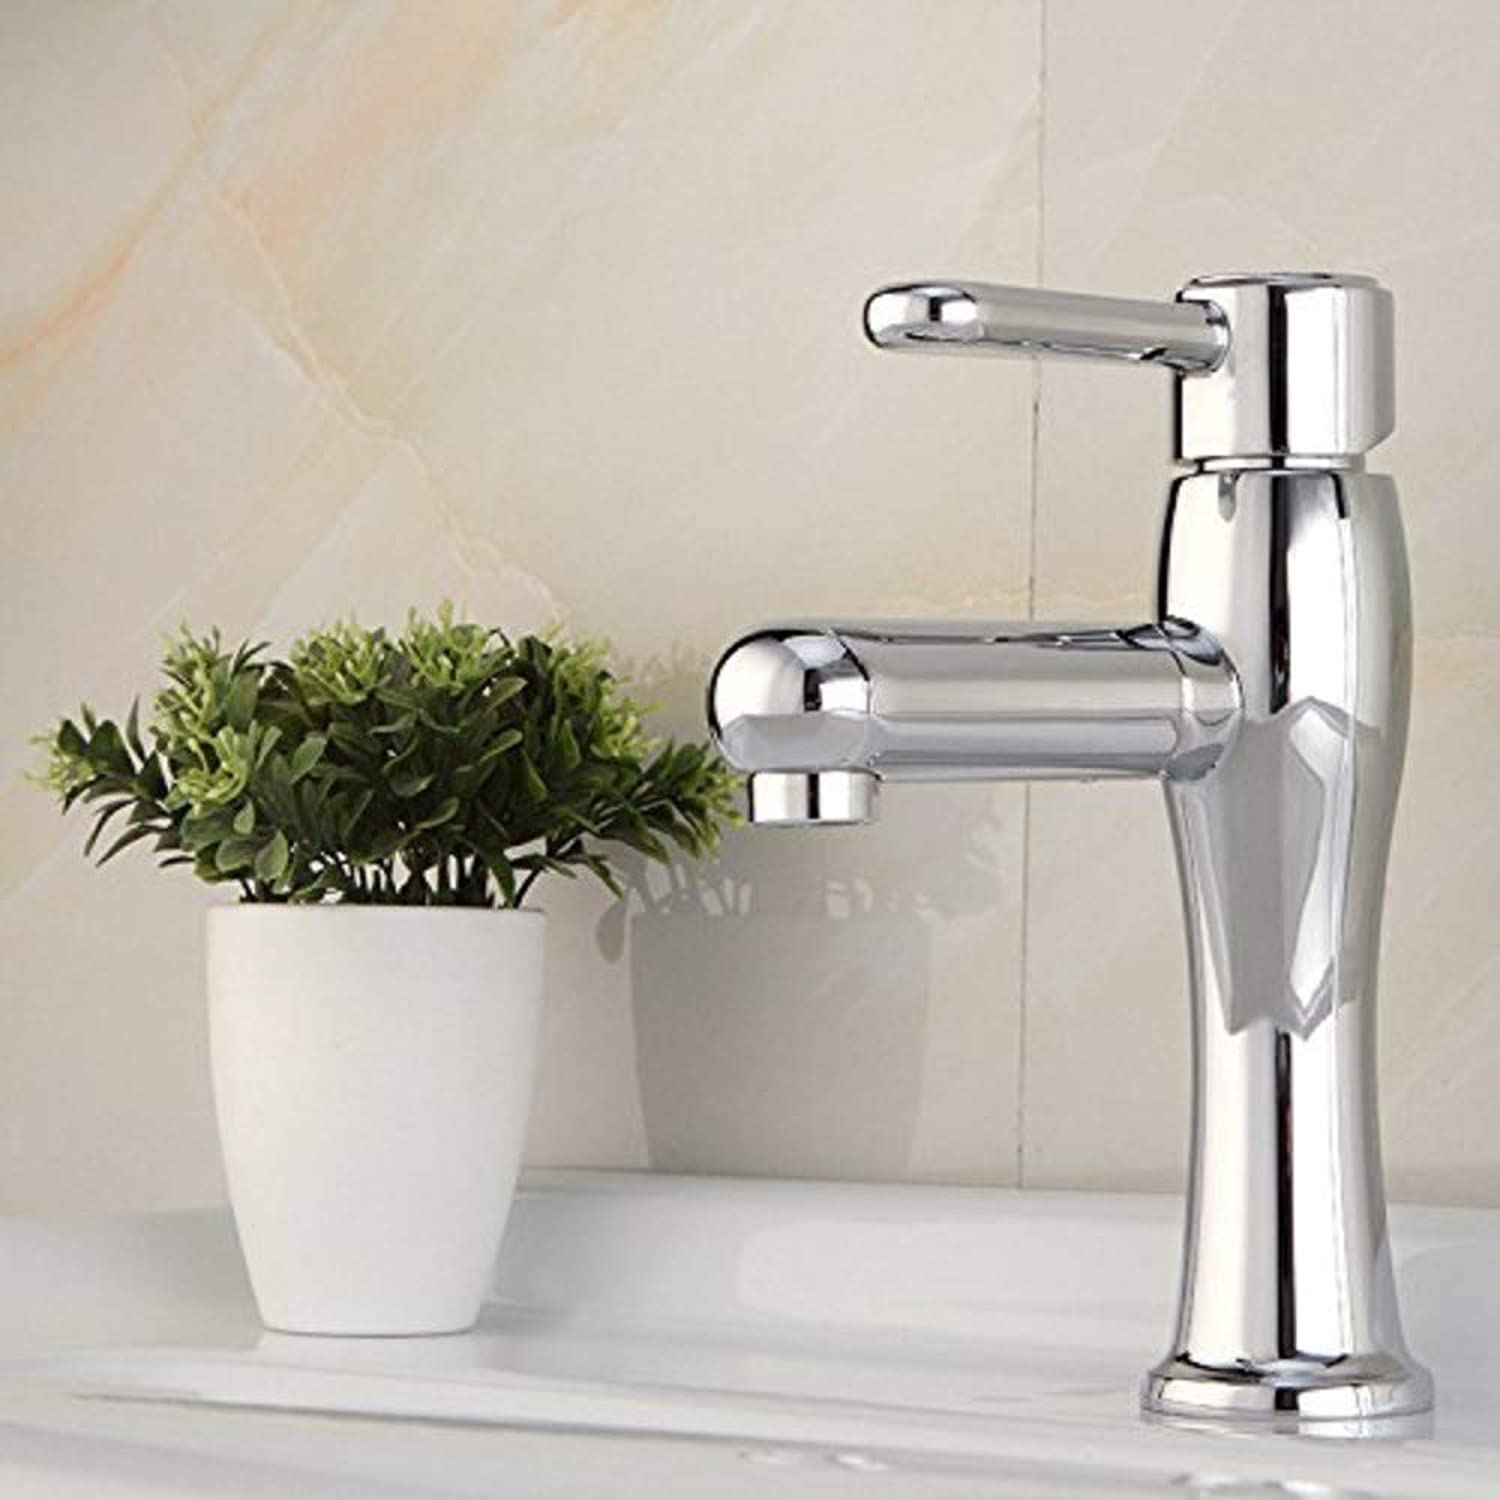 360° redating Faucet Retro Faucetredation Hot and Cold Shower Click The Type Water High Quality Faucets